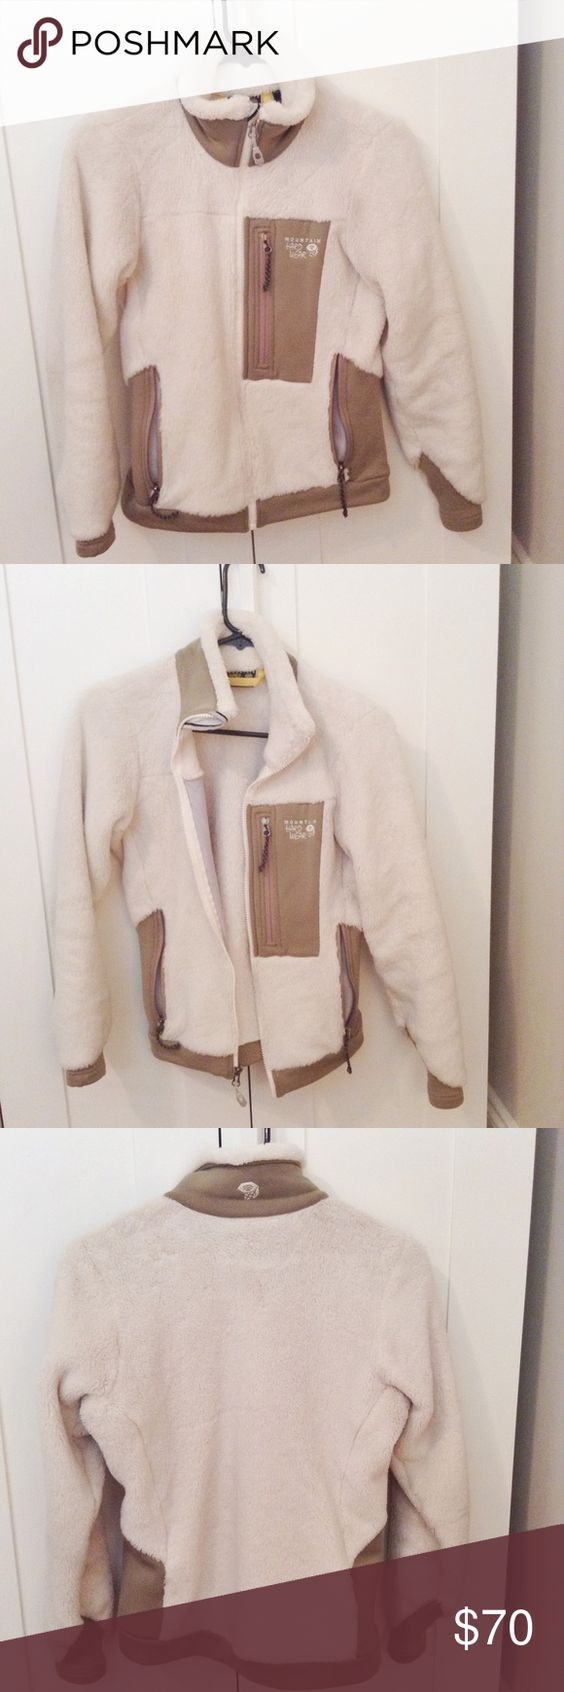 "Mountain Hard Wear ""Monkey Woman Jacket"" This off-white zip up is perfect for lounging, camping, hiking, skiing, or chatting around the fire. In good condition, willing to sell at a discount if bundled with Women's Chacos (also listed in shop, size 7). Mountain Hard Wear Jackets & Coats Utility Jackets"